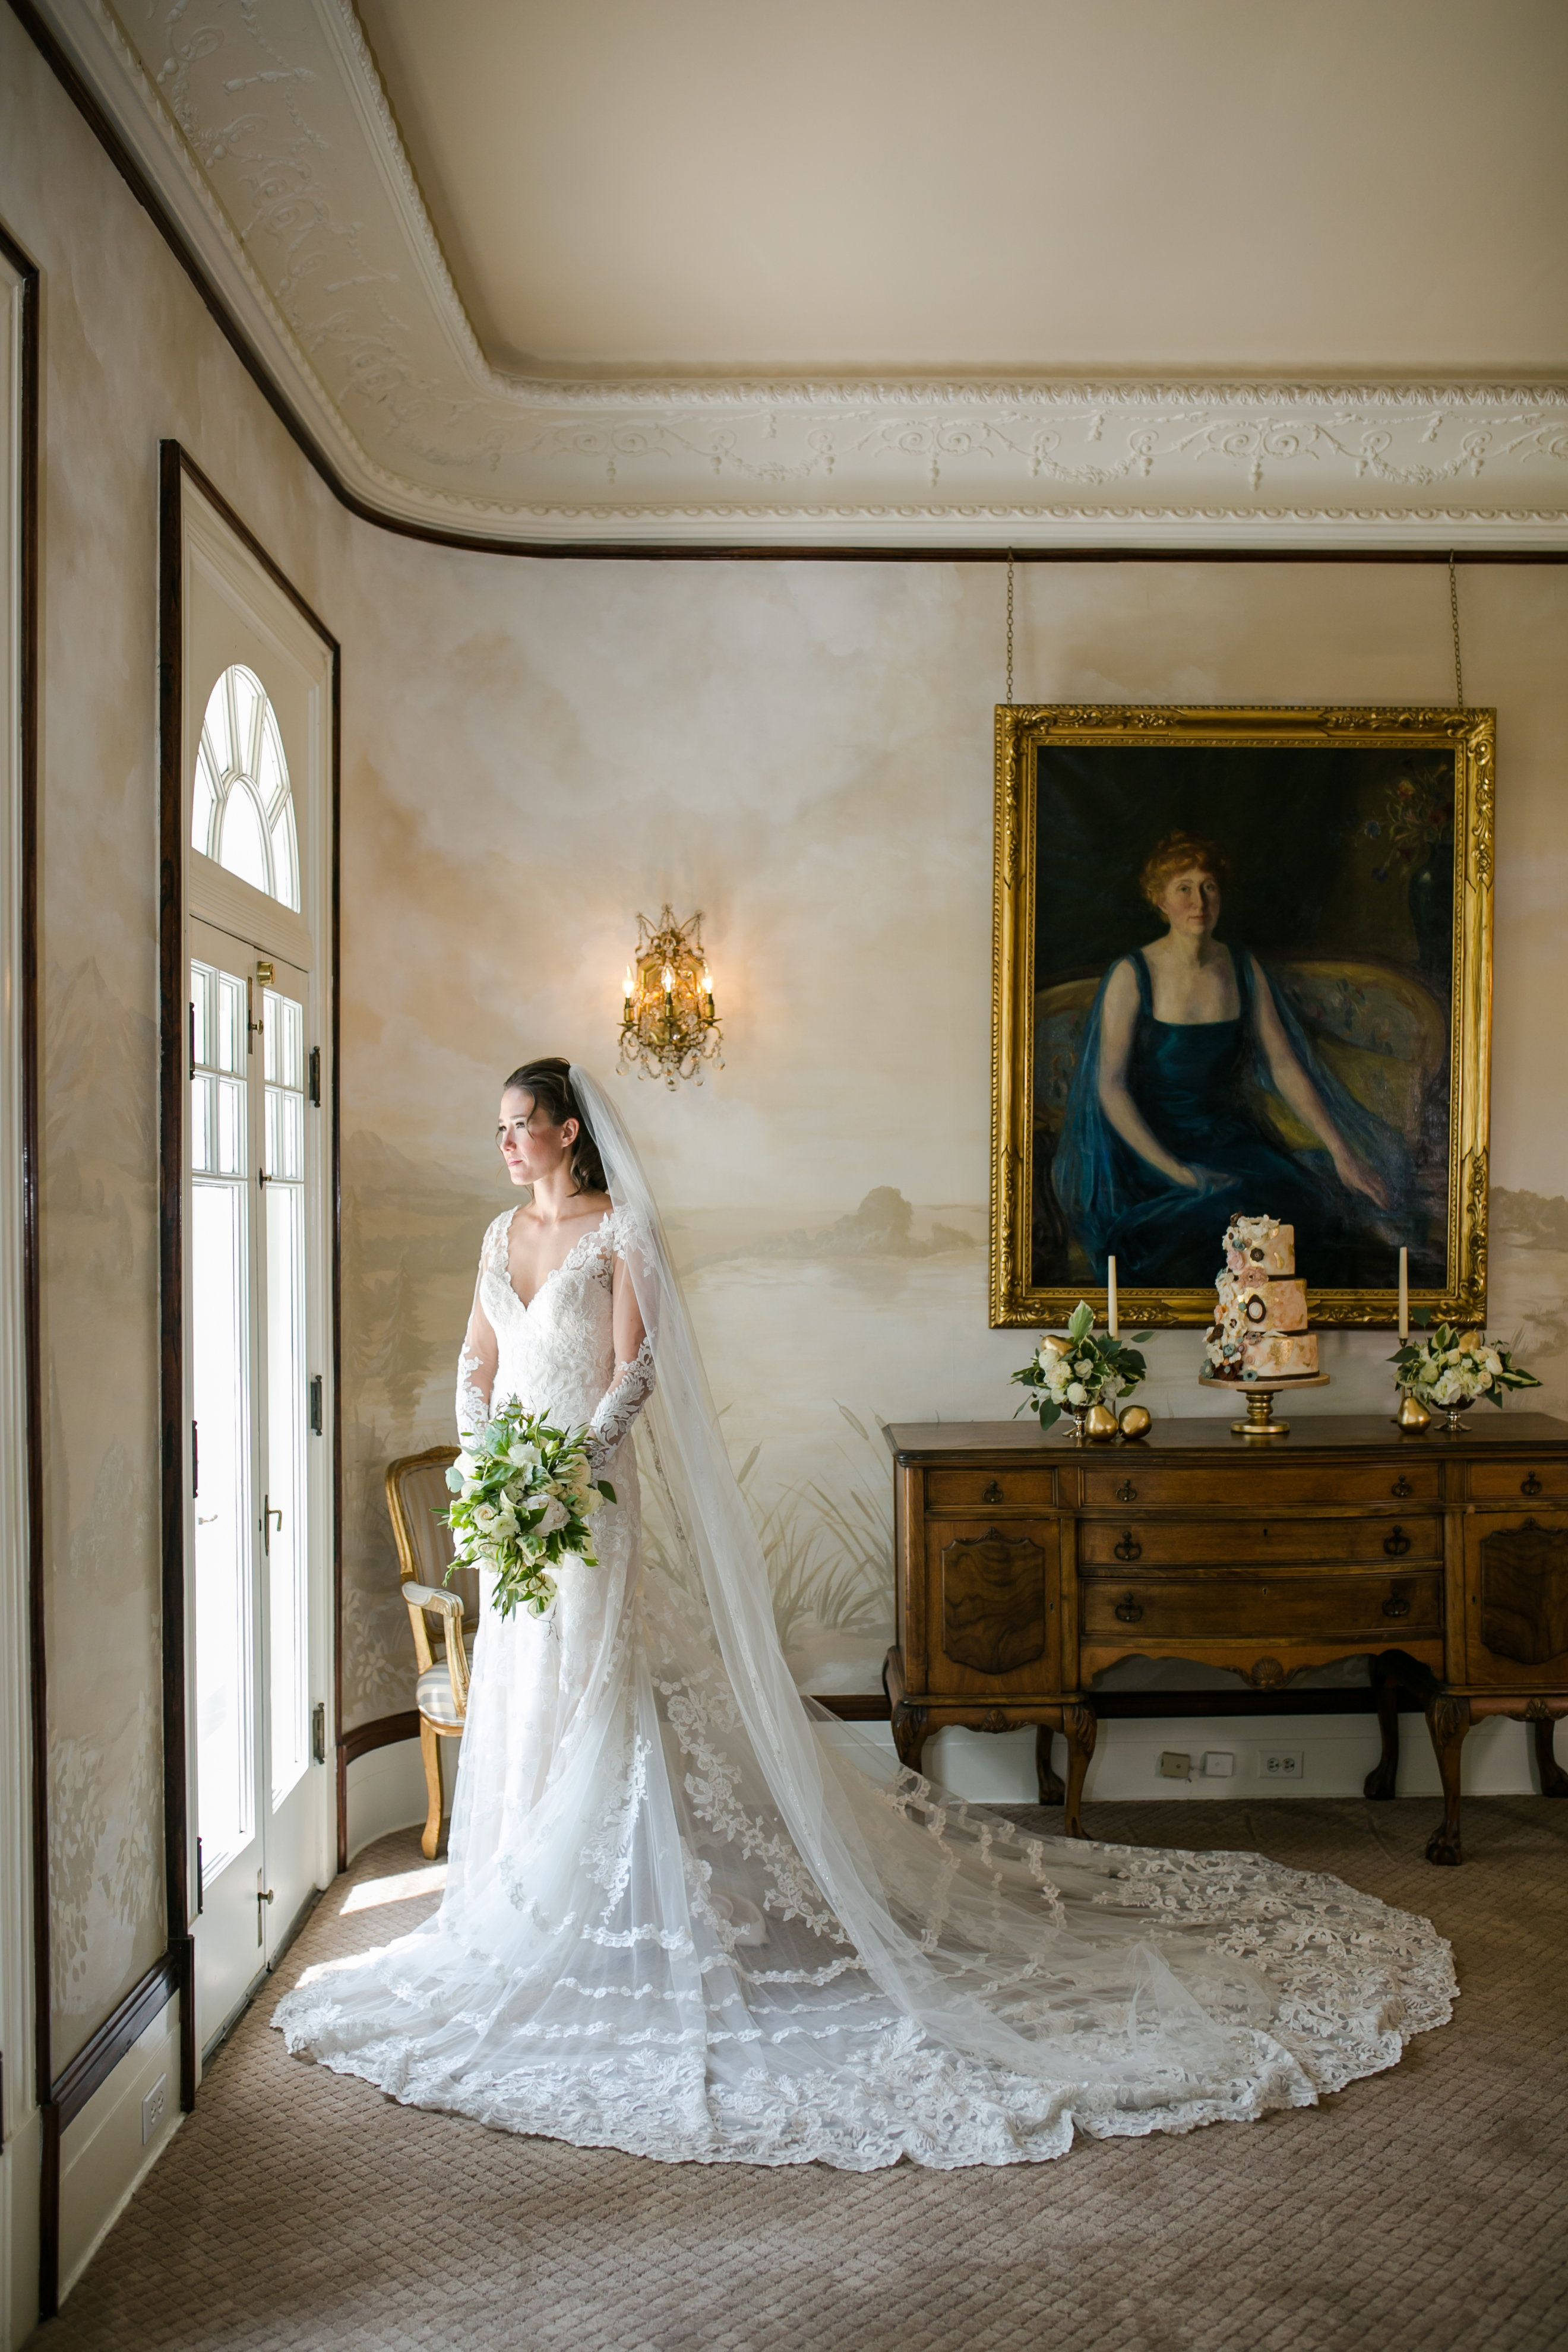 Grant Humphreys Mansion Wedding Photography By Katie Corinne For This Styled Shoot We Wanted The Refinement And